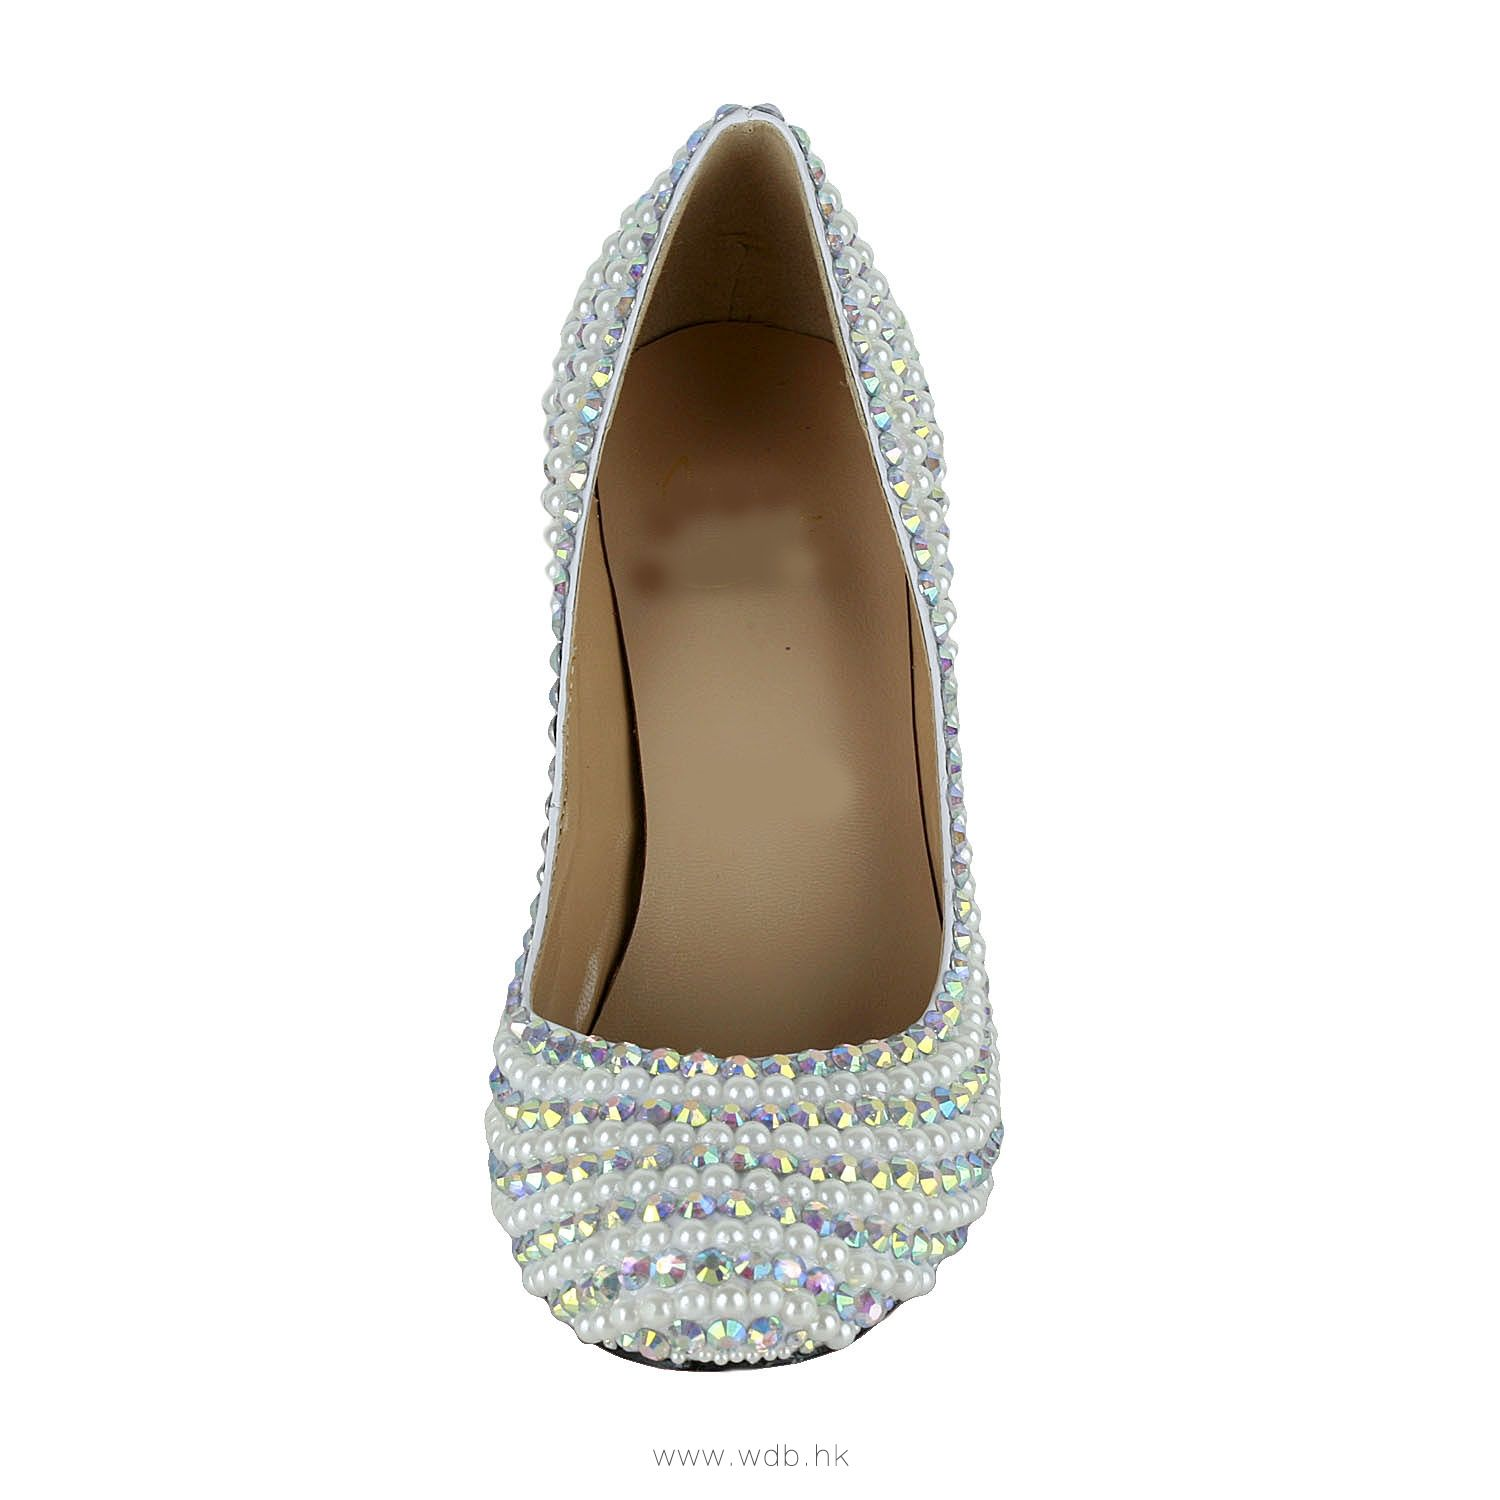 3 inch White Beading Leather shoes $66